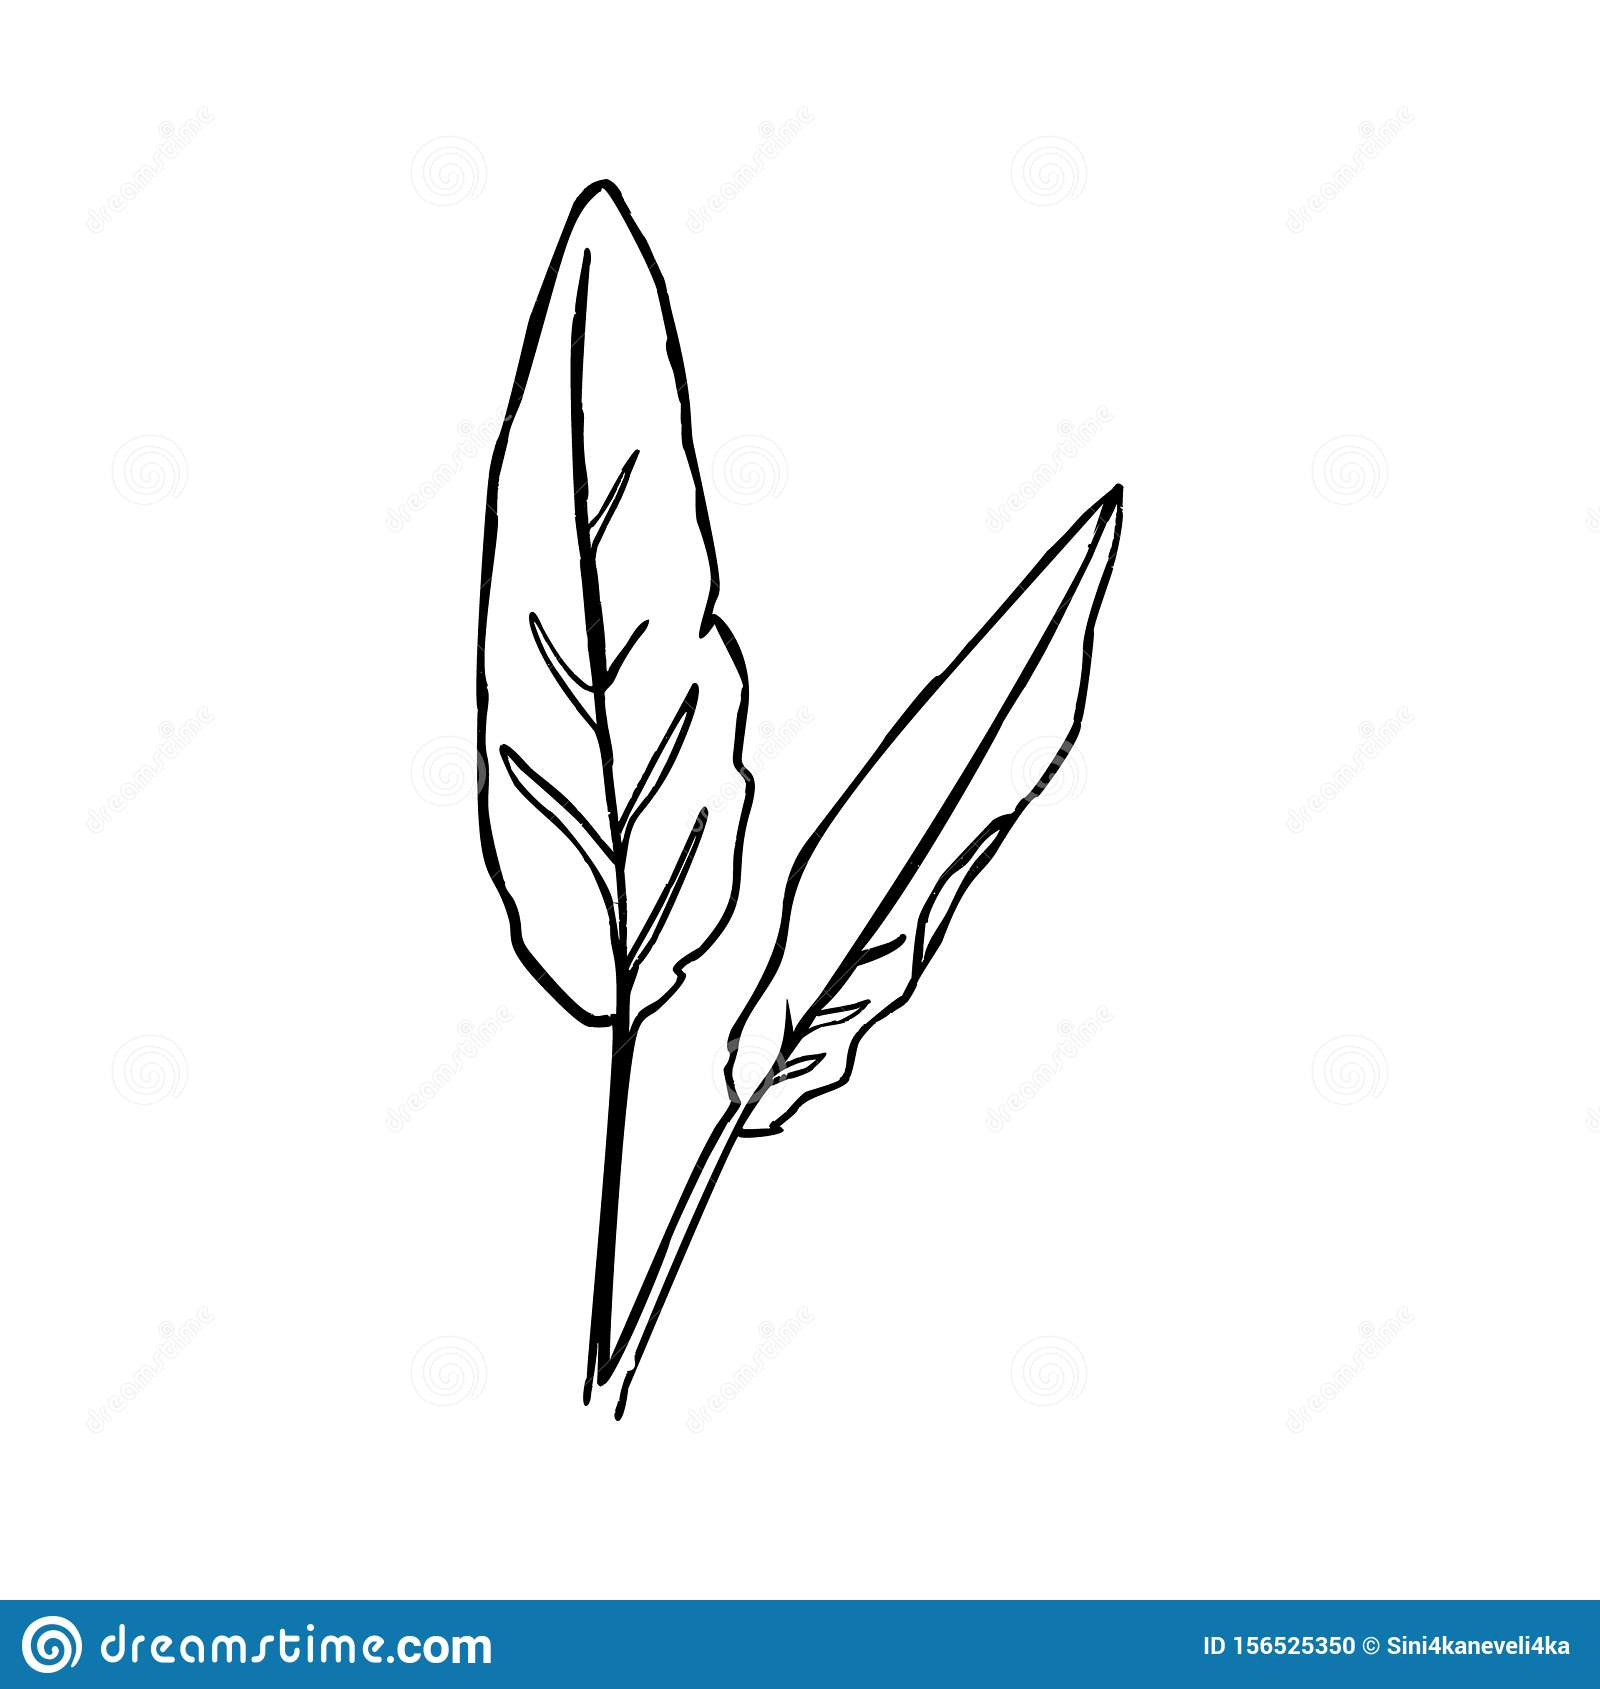 One Line The Banana Leaf Continuous Line Tropical Plant In A Modern Minimalist Style Vector Illustration Stock Vector Illustration Of Minimal Drawing 156525350